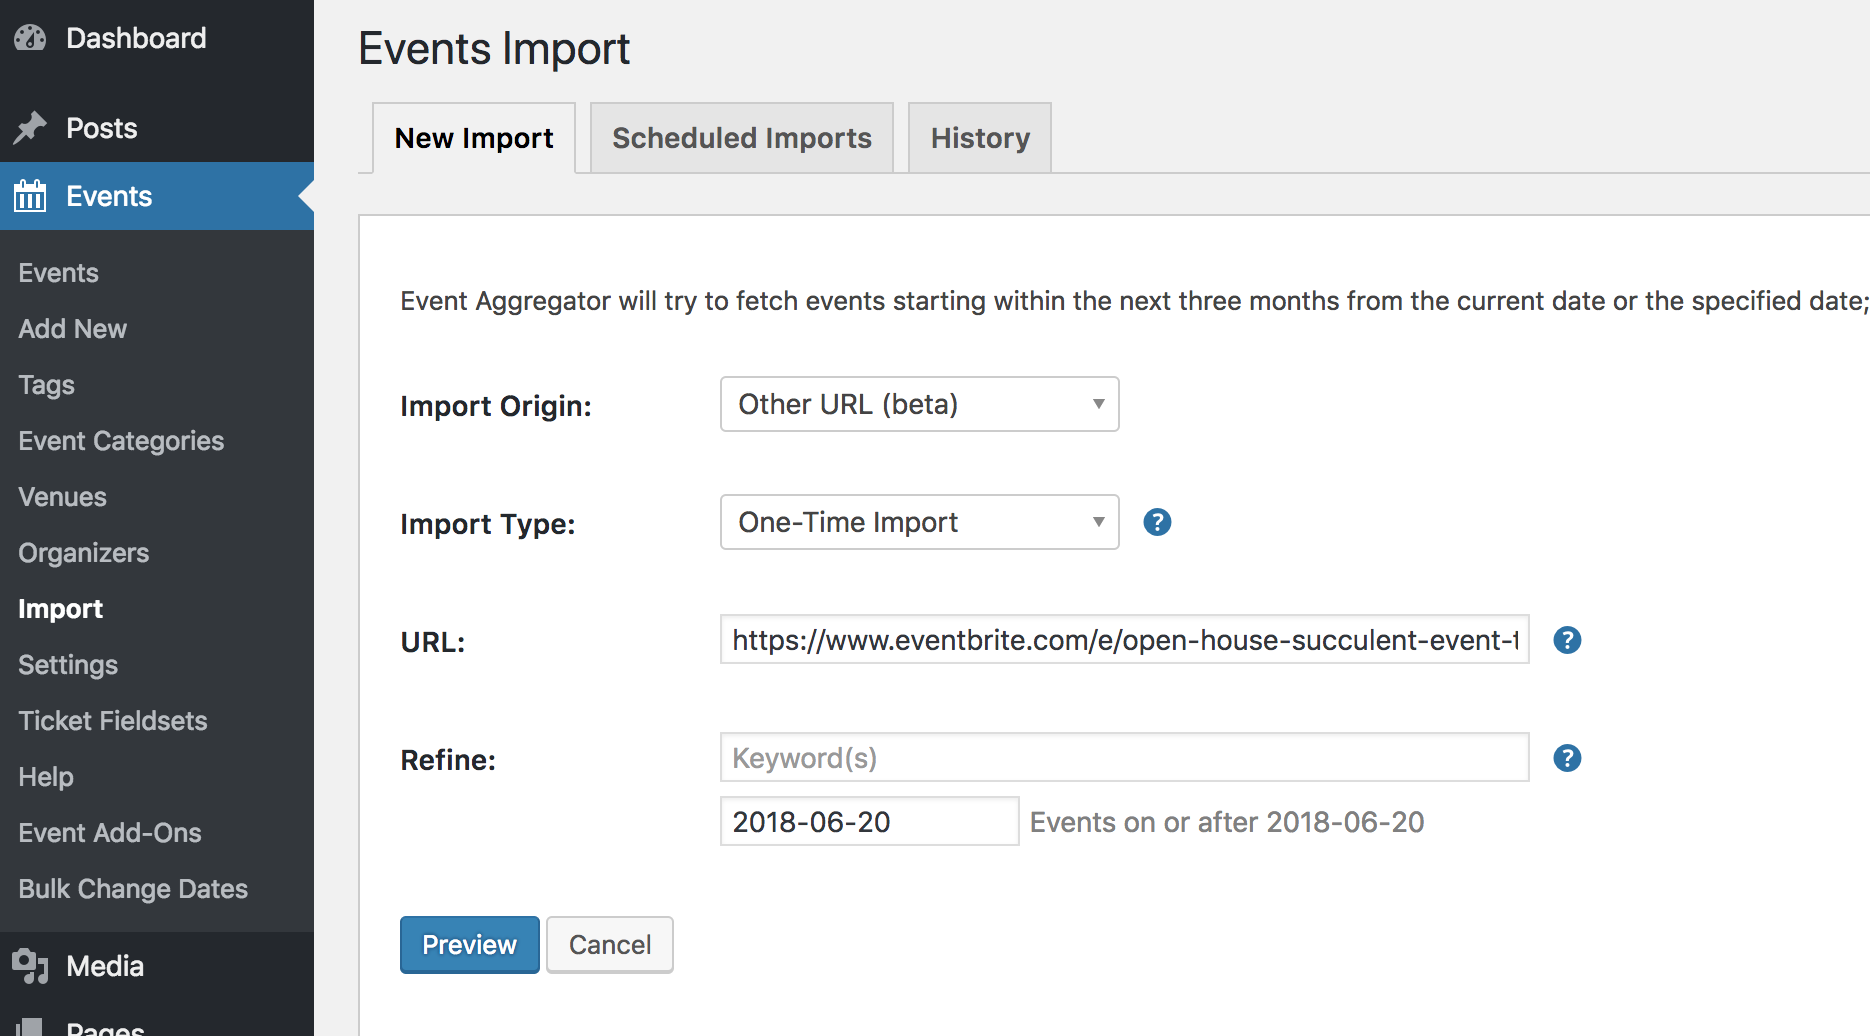 How to import Eventbrite events without tickets: Events > Import > Other URL > Eventbrite